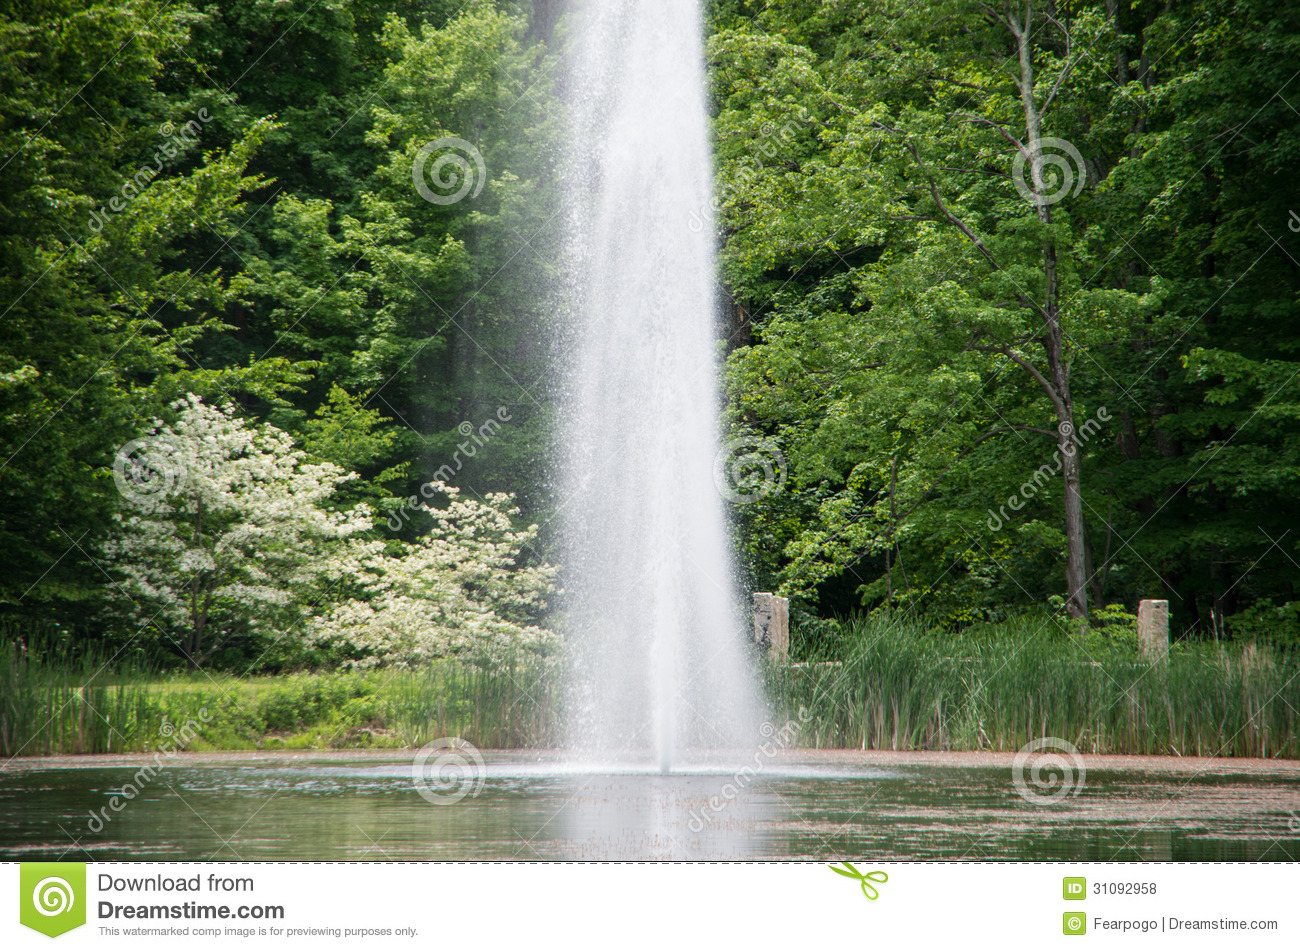 Water Spout In A Pond Royalty Free Stock Photos Image